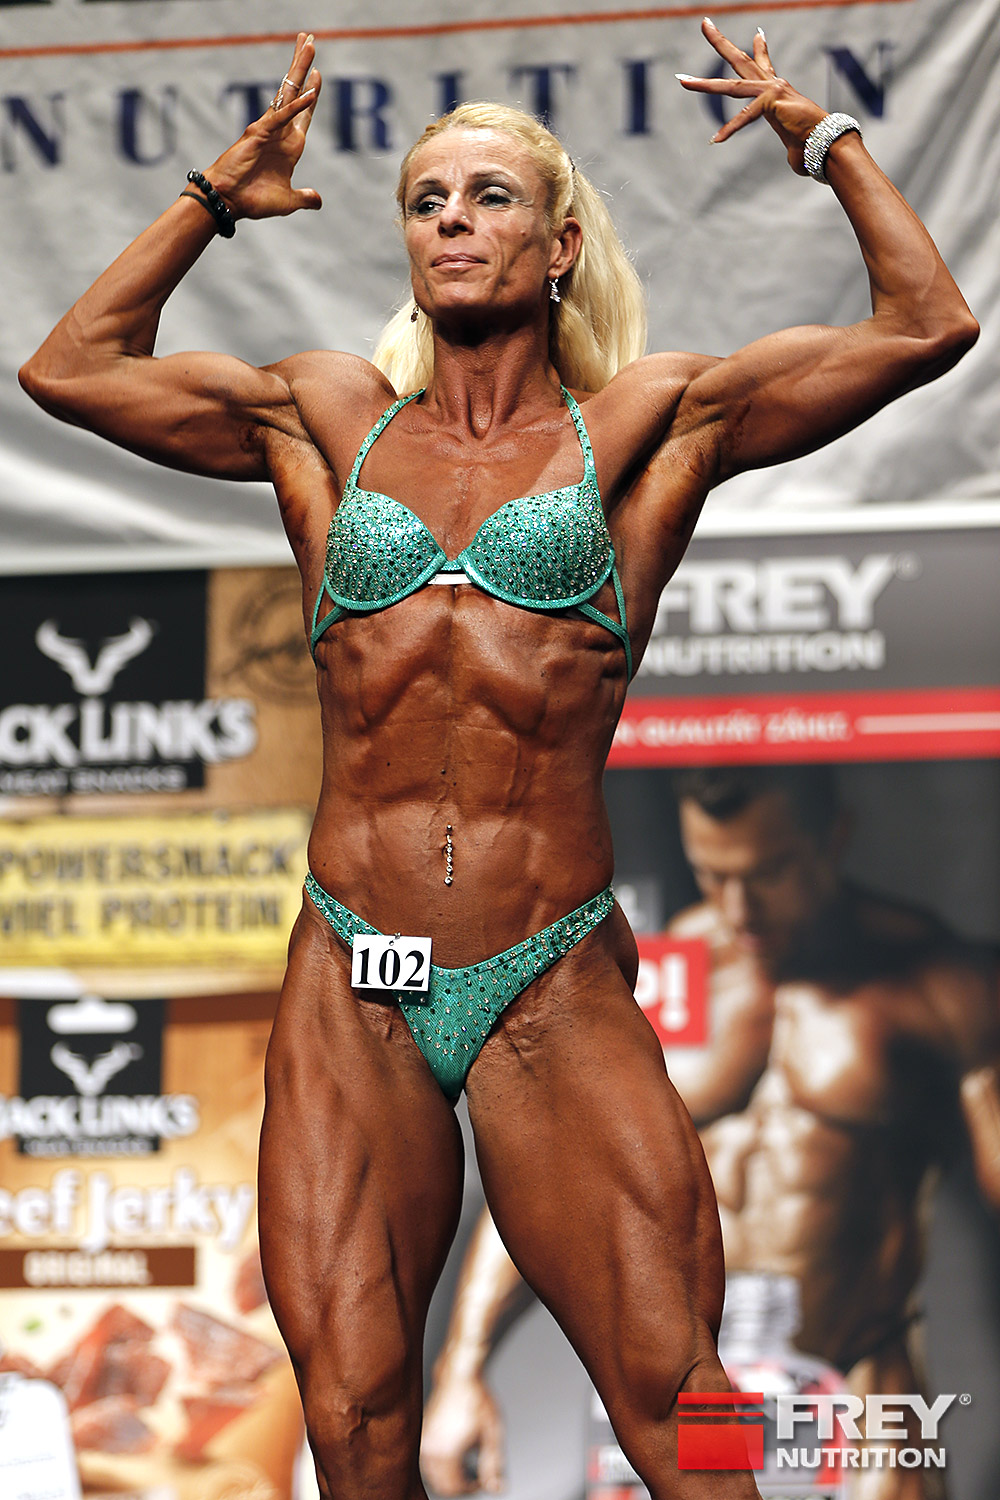 Ms. Figur over 40 | Andrea Czink